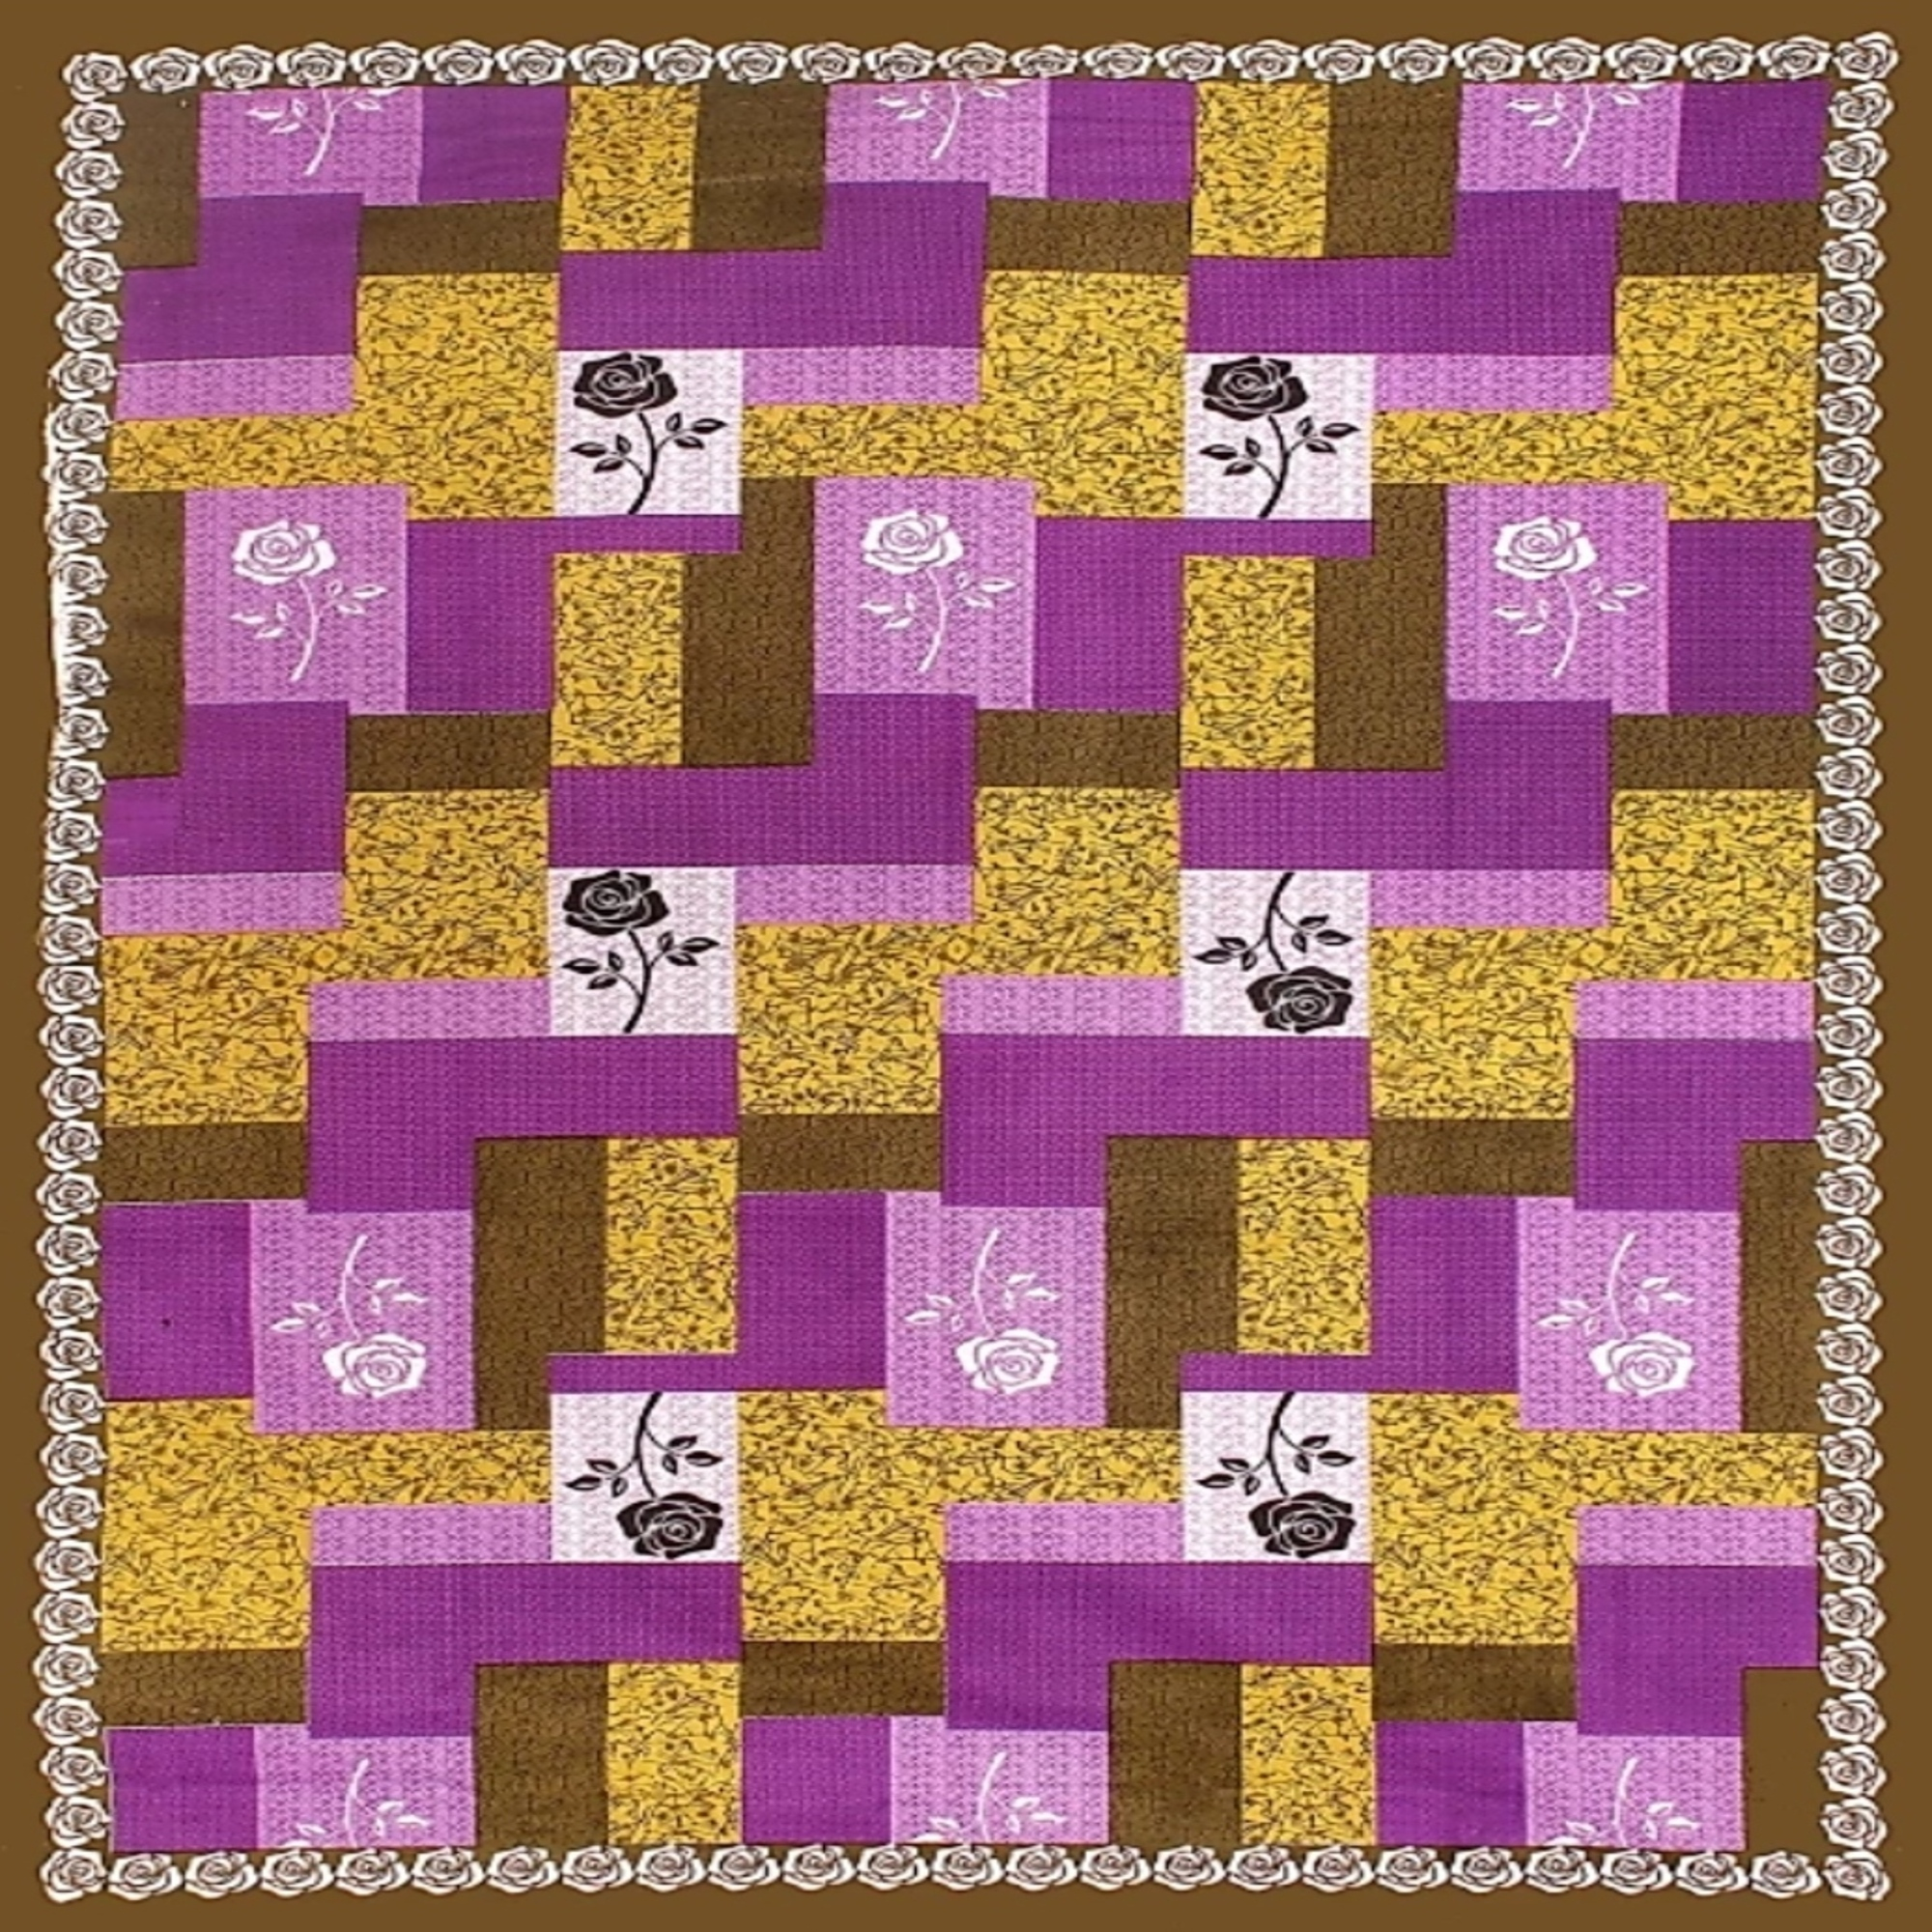 Pooja Fashion - Purple Colored Printed Single Cotton Bedsheet With 1 Pillow Cover